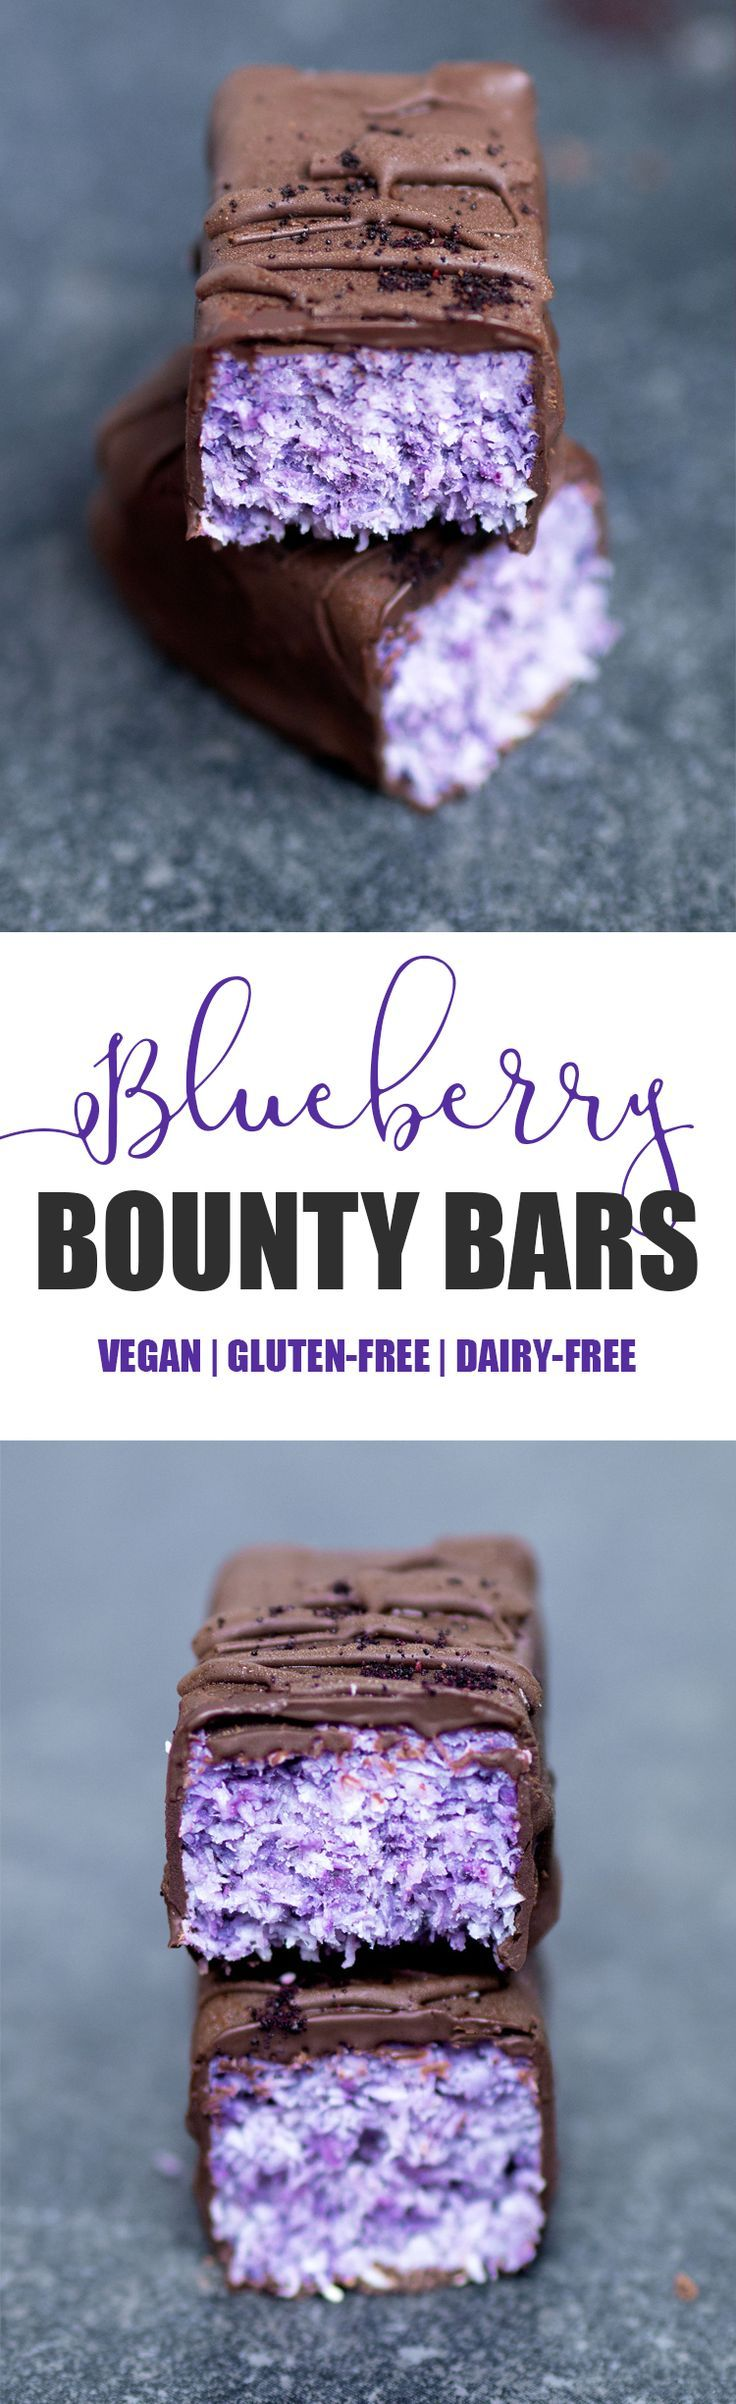 Blueberry Bounty Bars